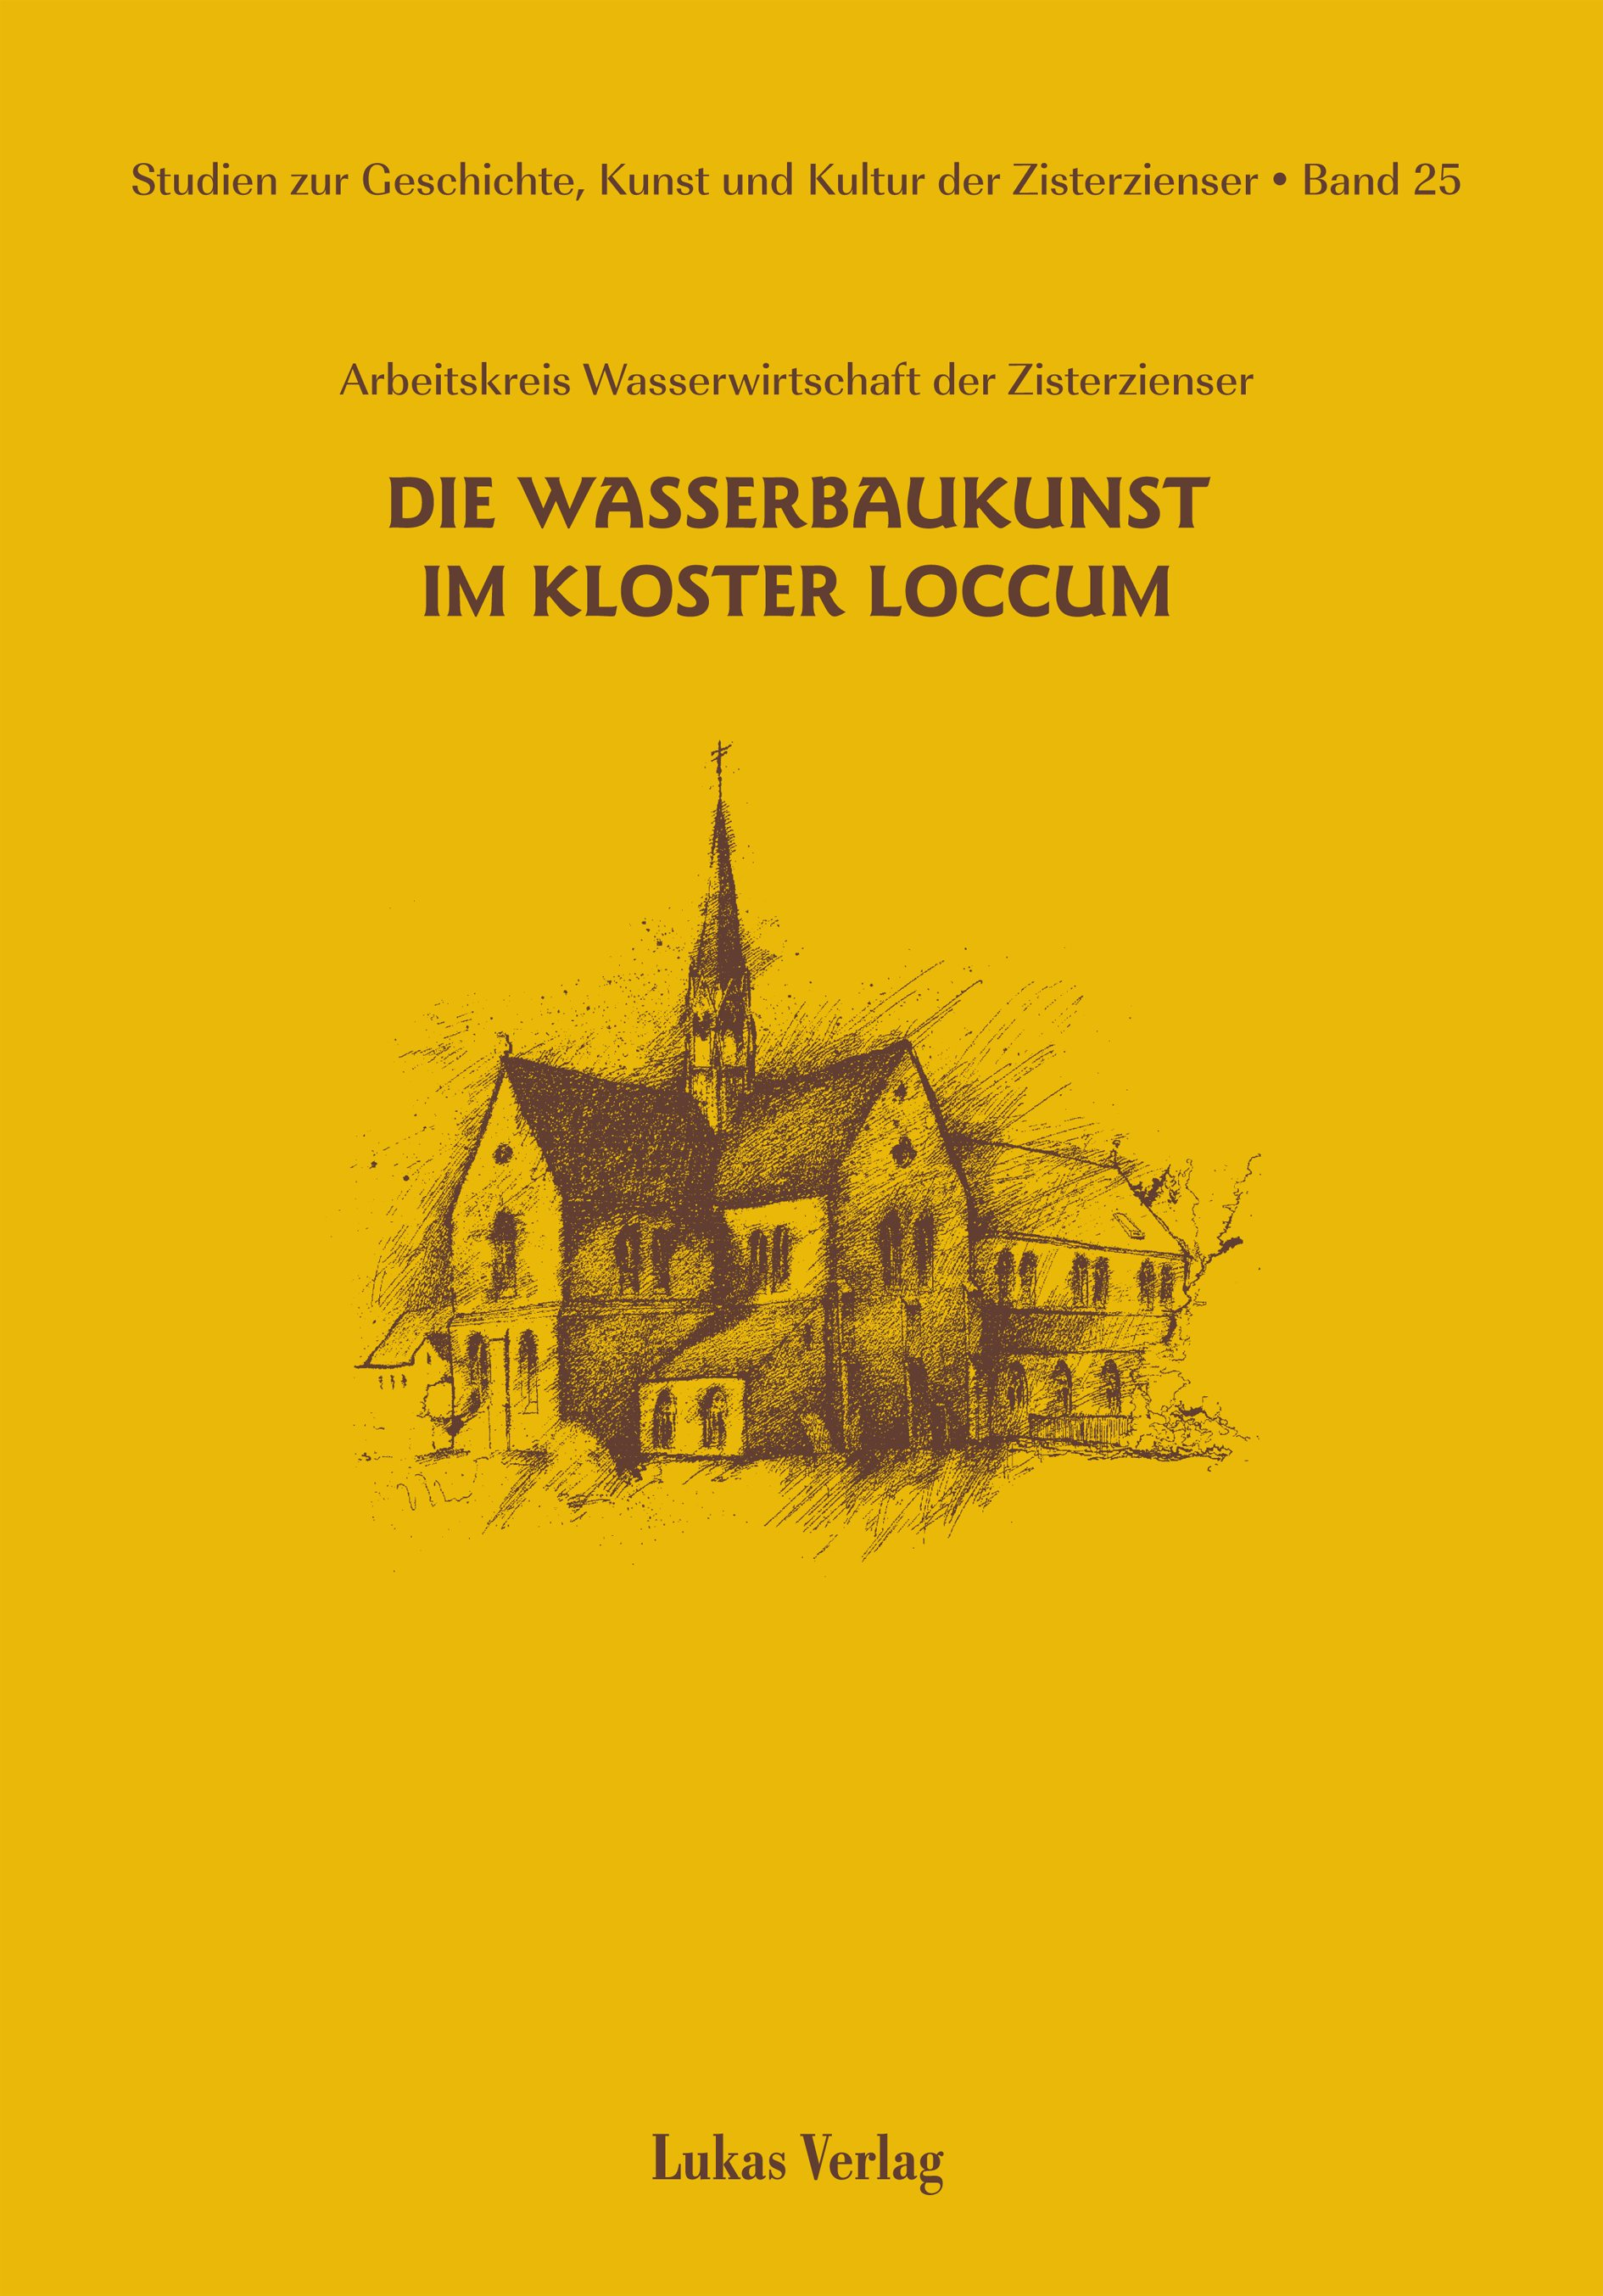 Die Wasserbaukunst im Kloster Loccum